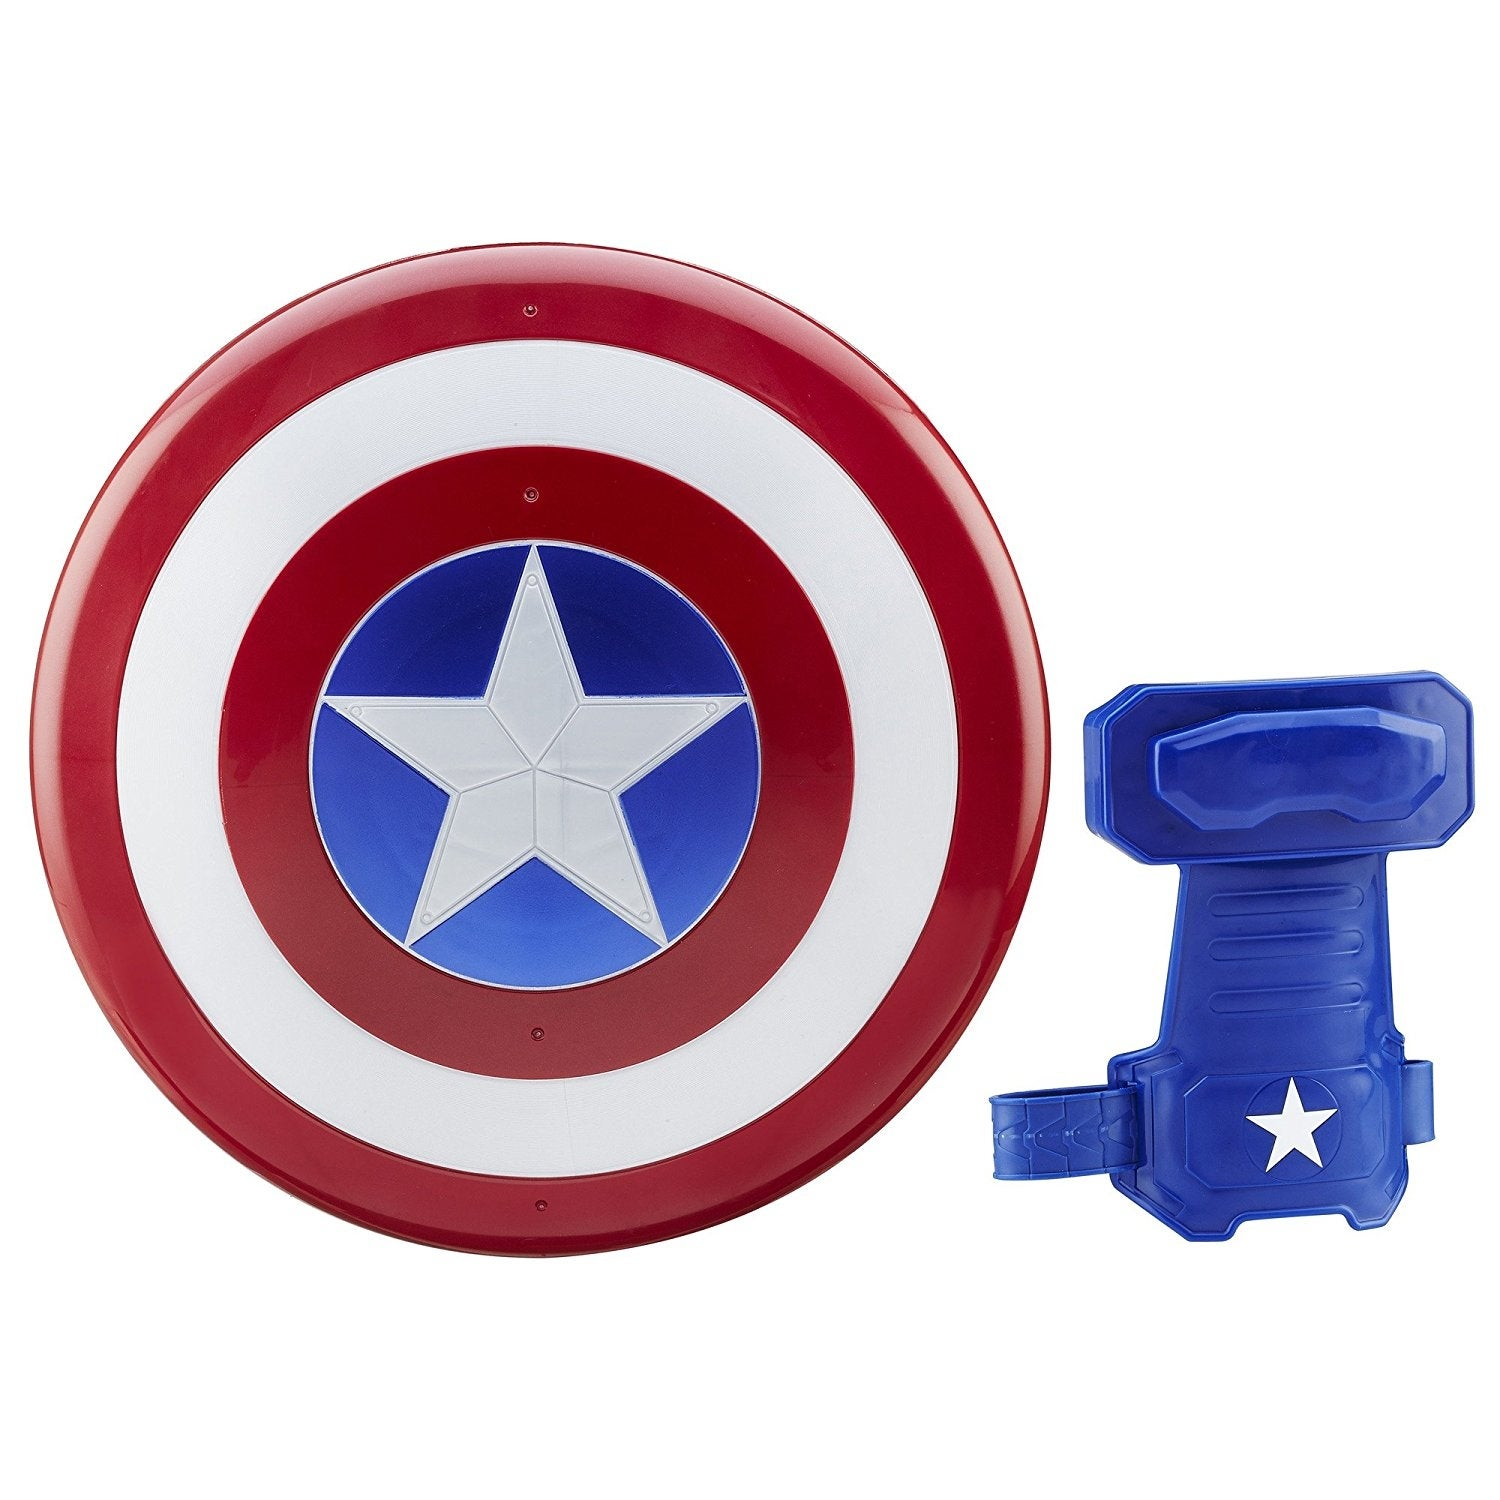 AVENGERS CAPTAIN AMERICA MAG SHIELD /& GUANTLET TOY